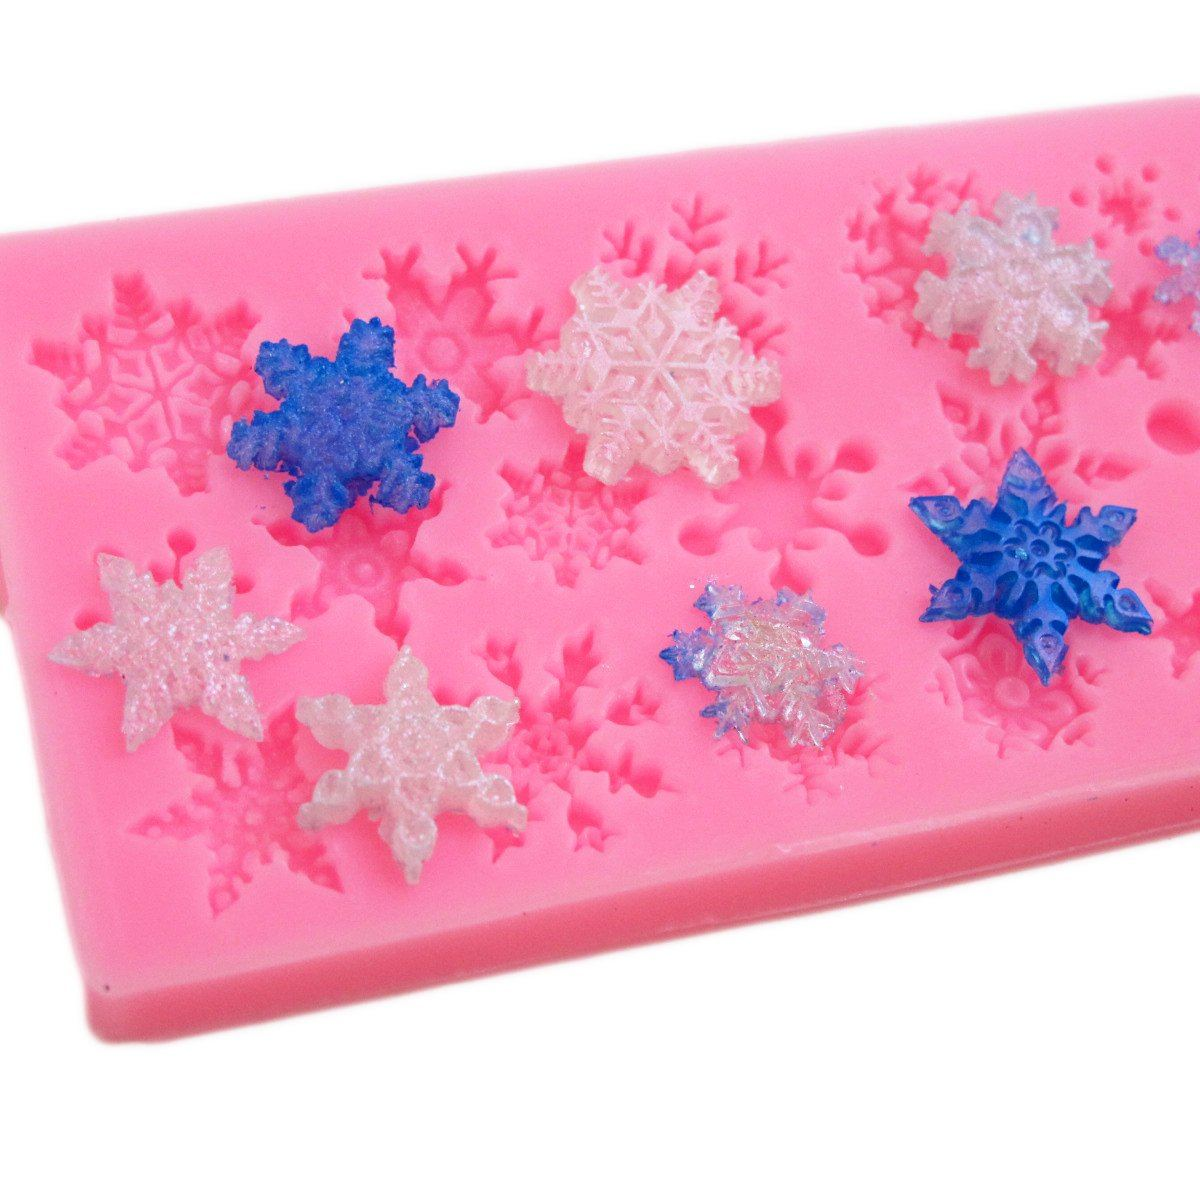 https://www.resinobsession.com/products/snowflake-silicone-mold/